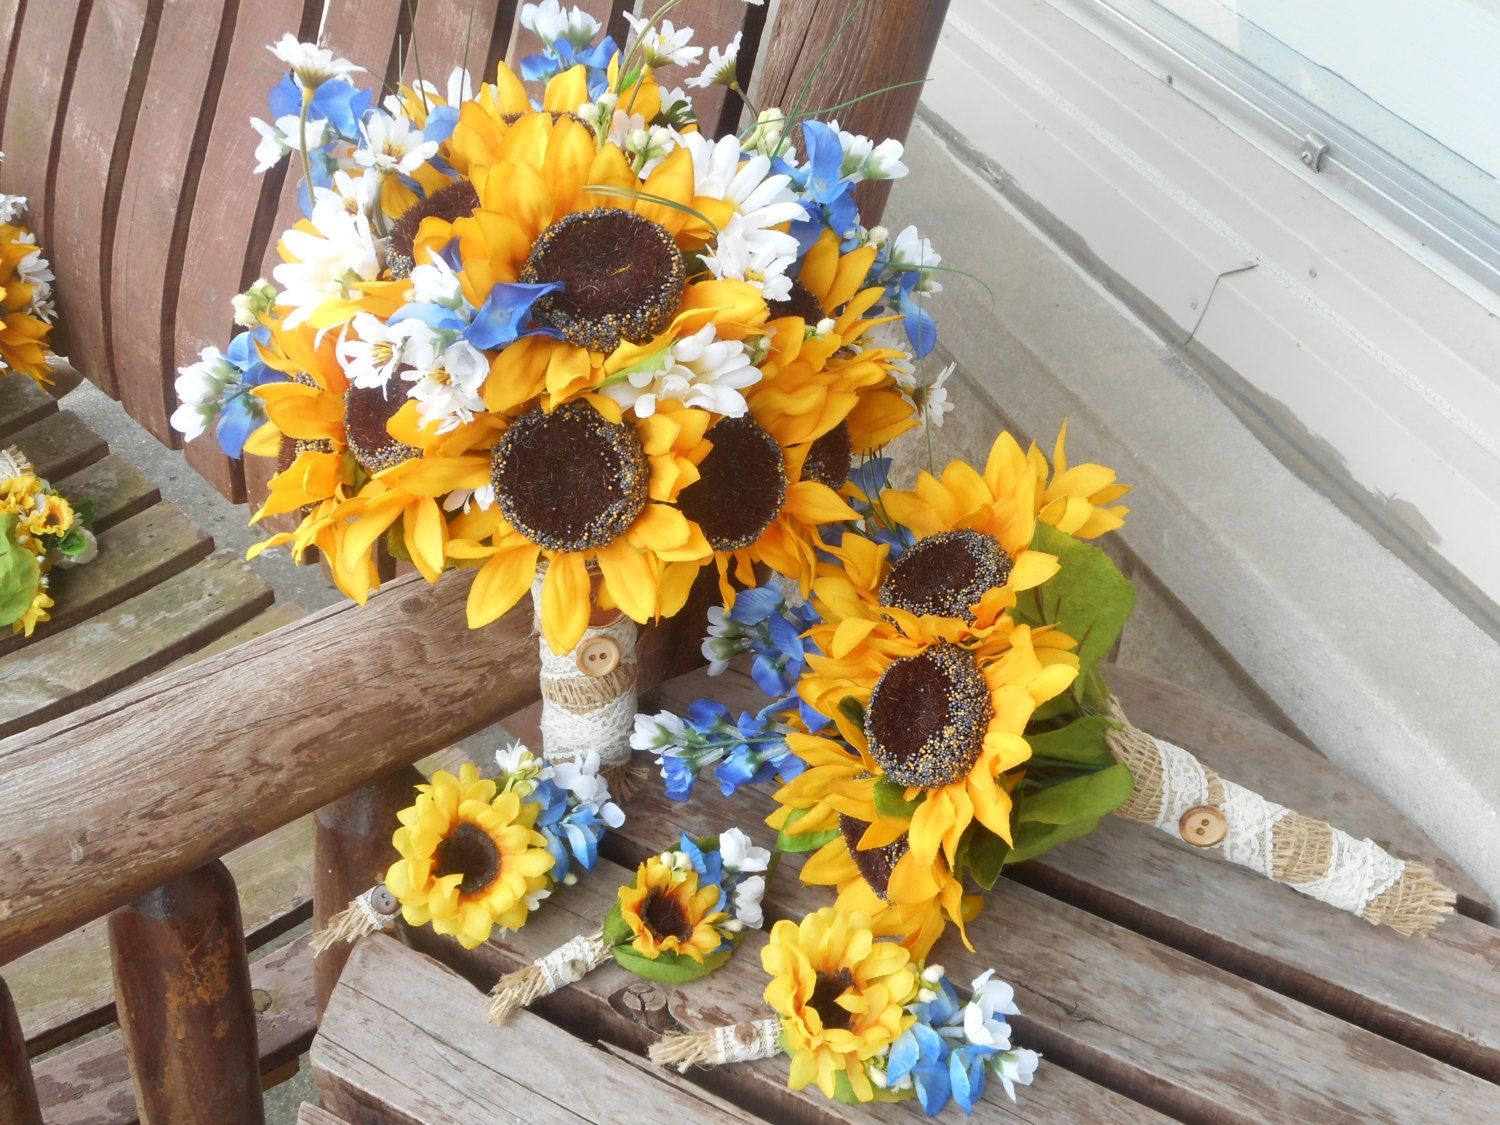 12 Pc Sunflowers And Texas Bluebonnets Rustic Wedding